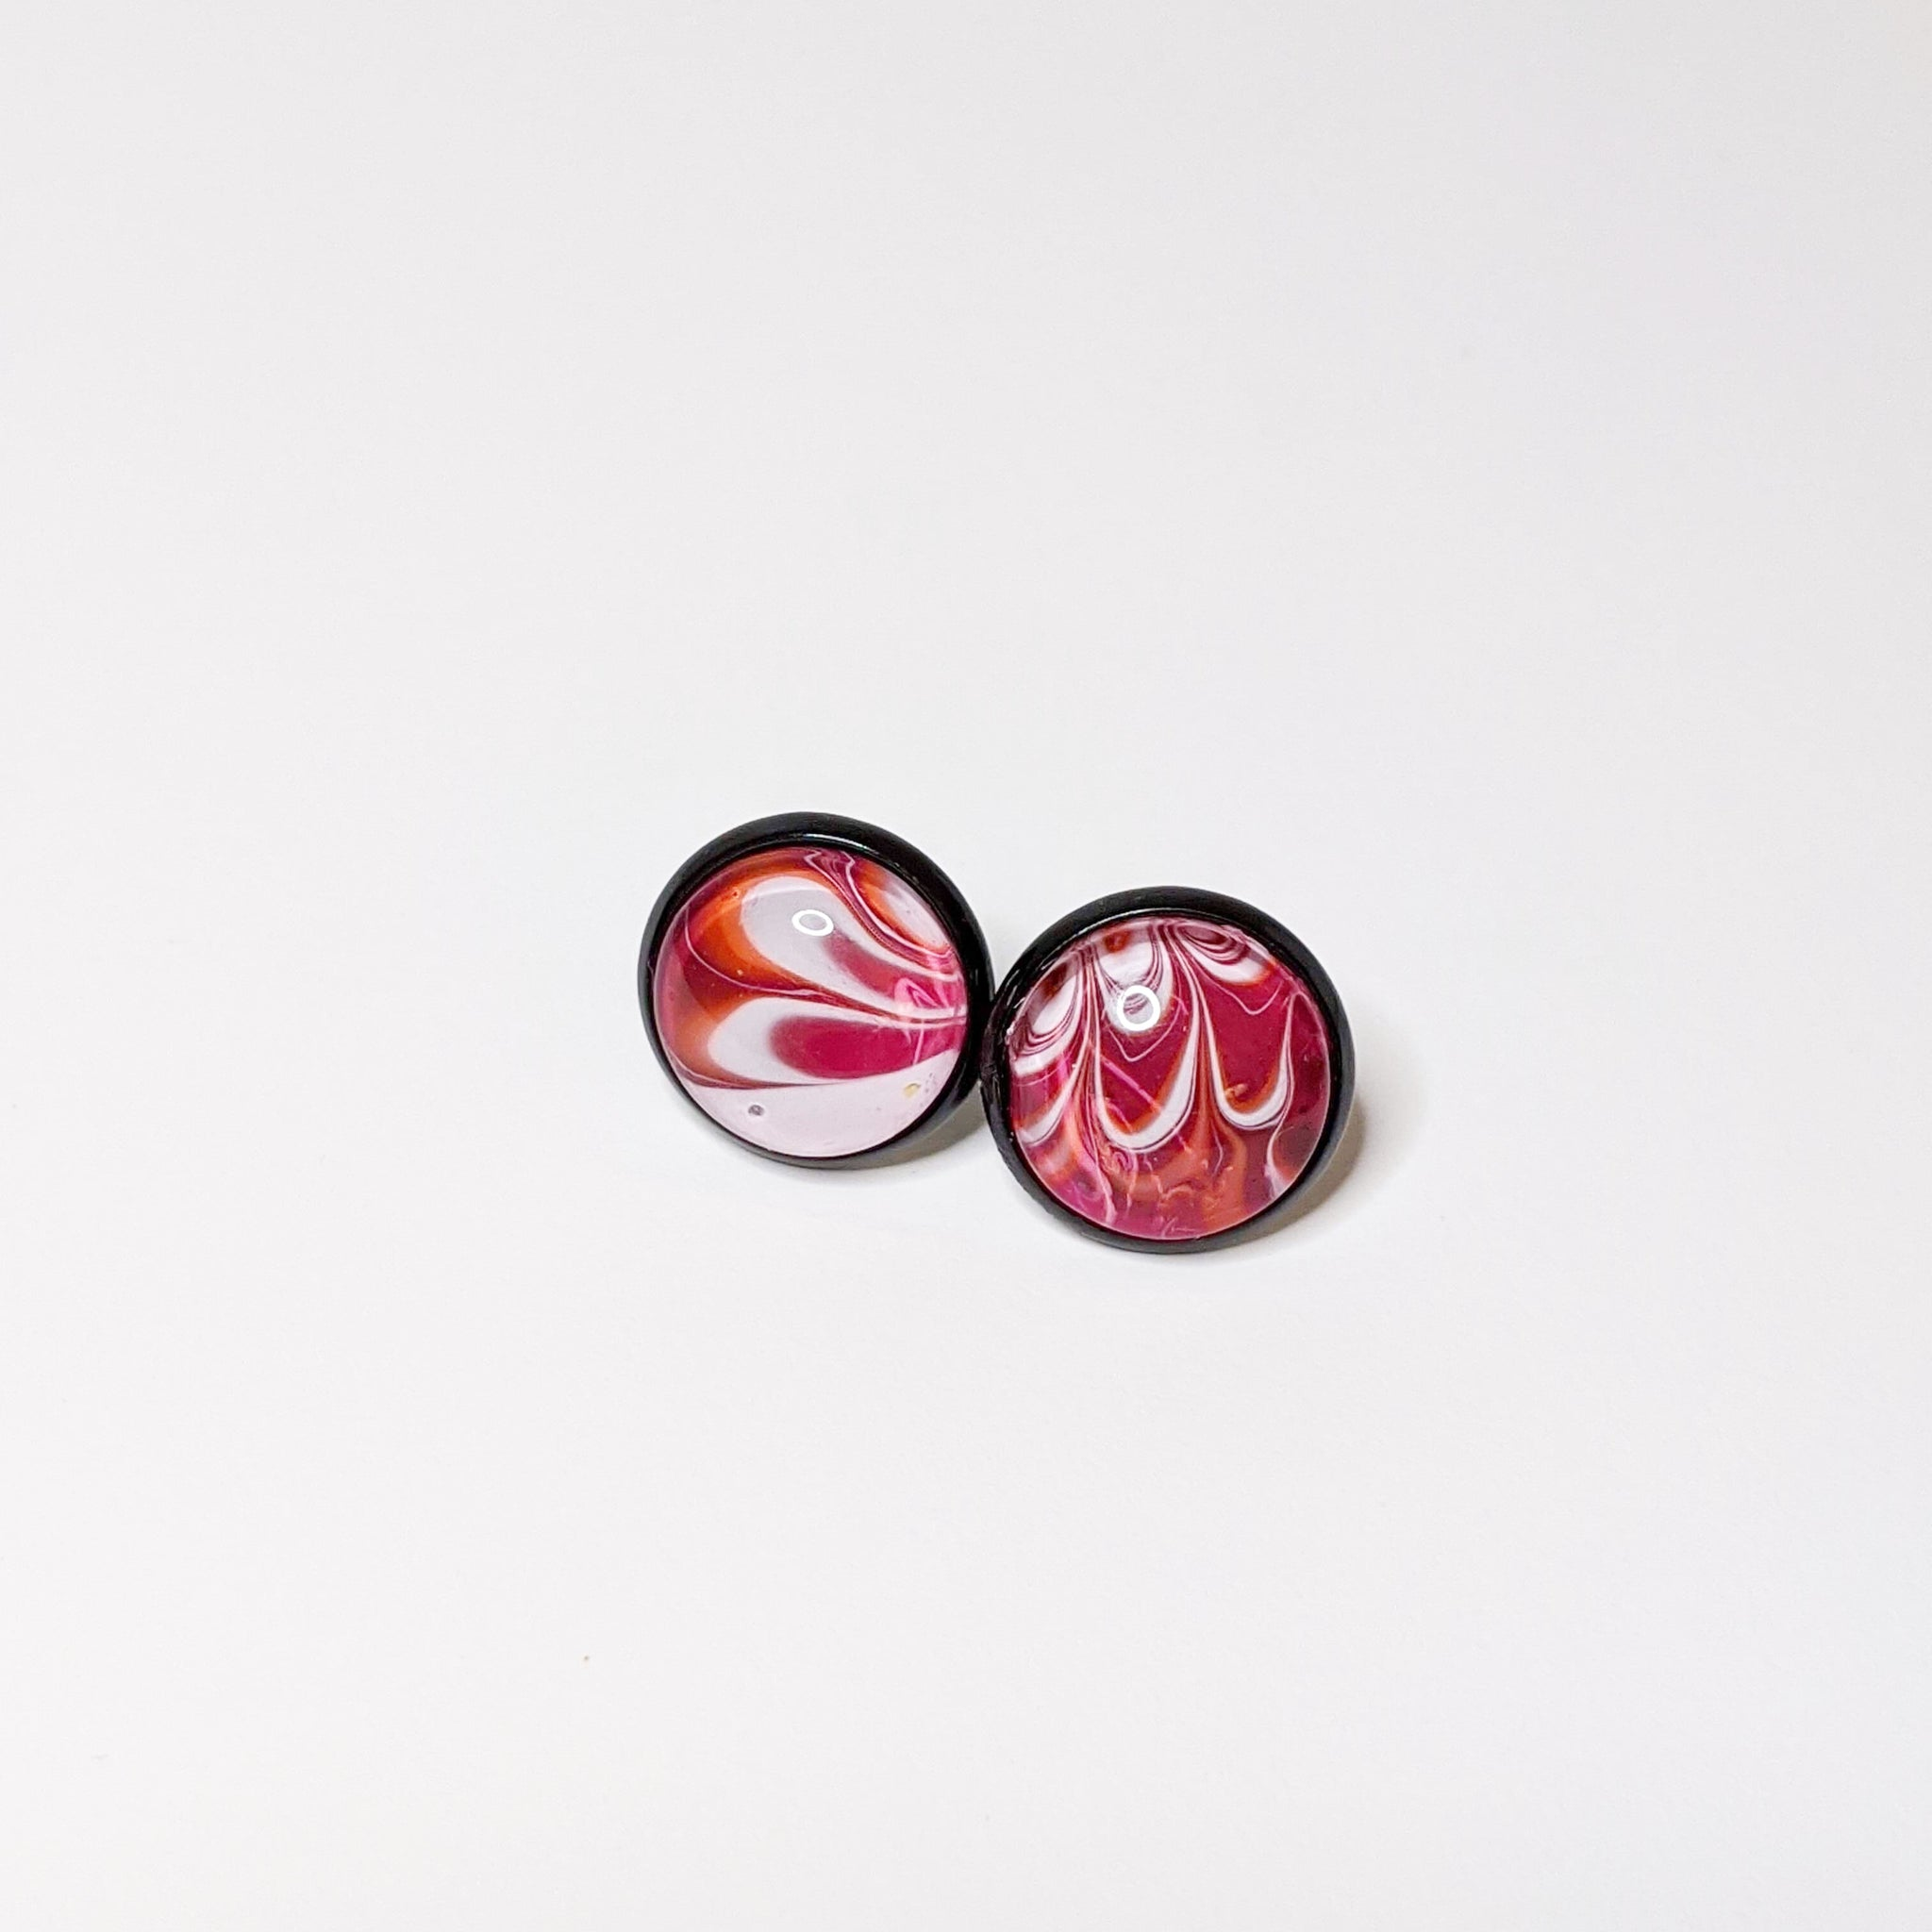 Earrings, Abstract Studs in Bright Pink, Orange and Black-Jewelry-Fullamoon Designs